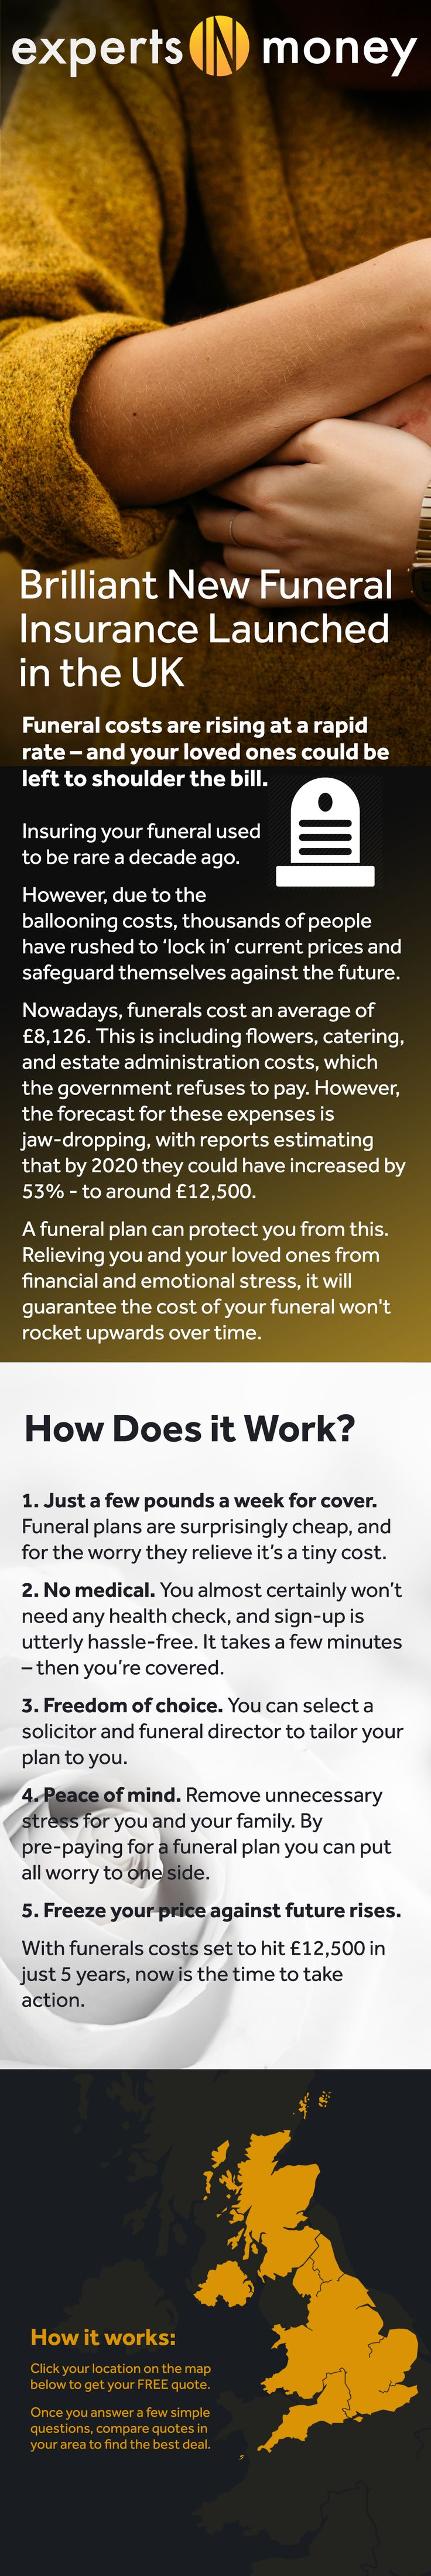 Best 25 funeral costs ideas on pinterest help with funeral nowadays funerals cost an average of 8126 a funeral plan can protect you solutioingenieria Gallery